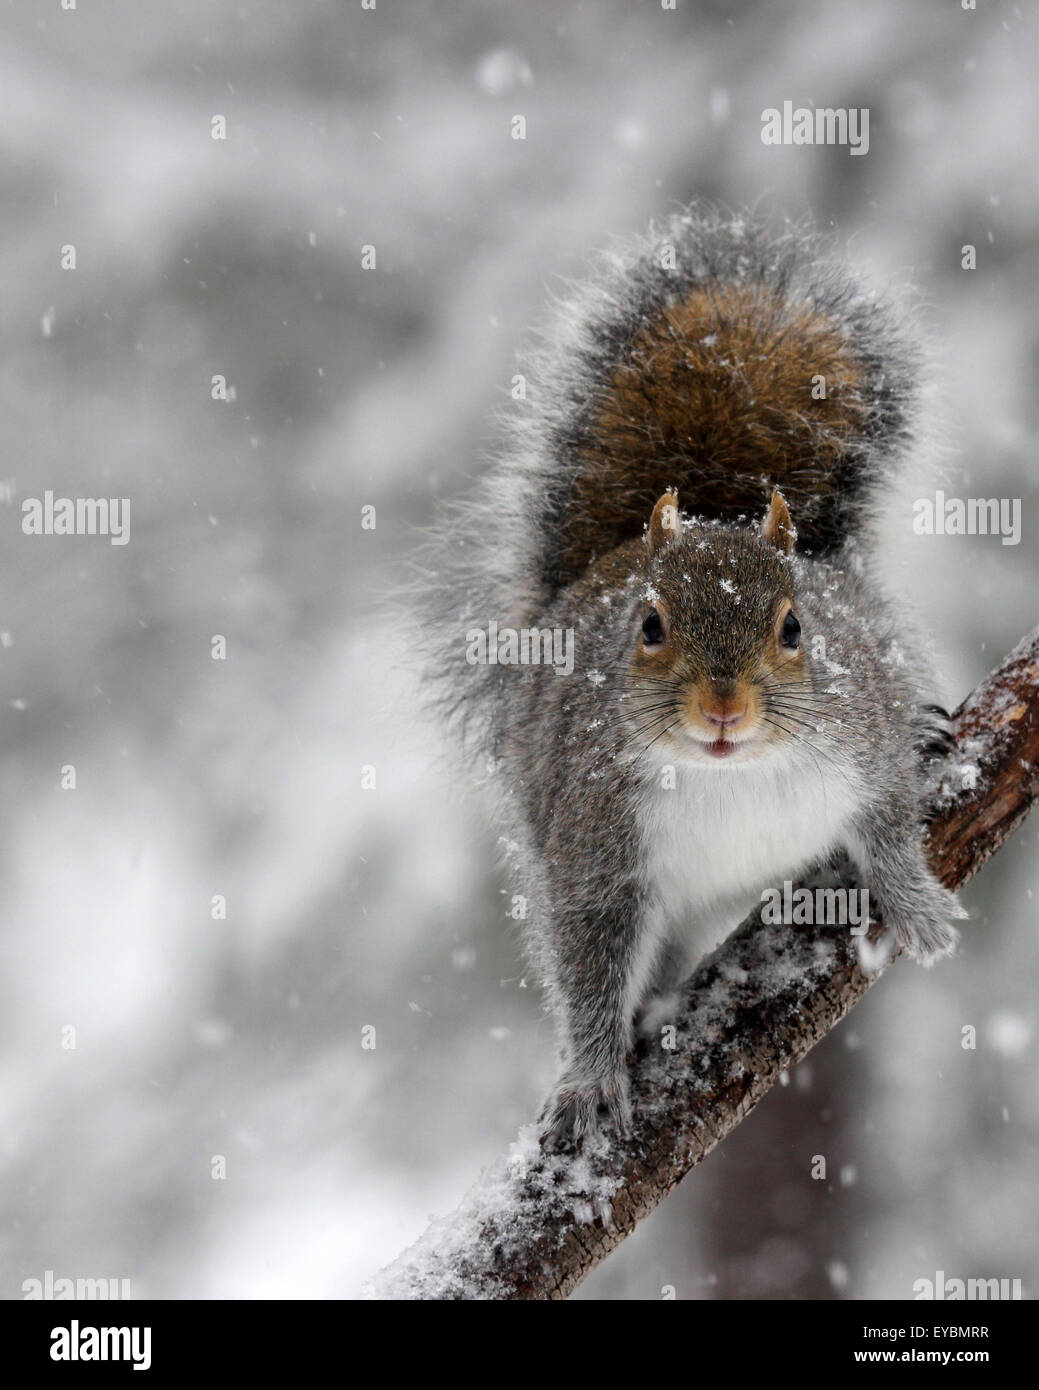 A gray squirrel (Sciurus carolinensis) on a branch in falling snow on a winter morning Stock Photo